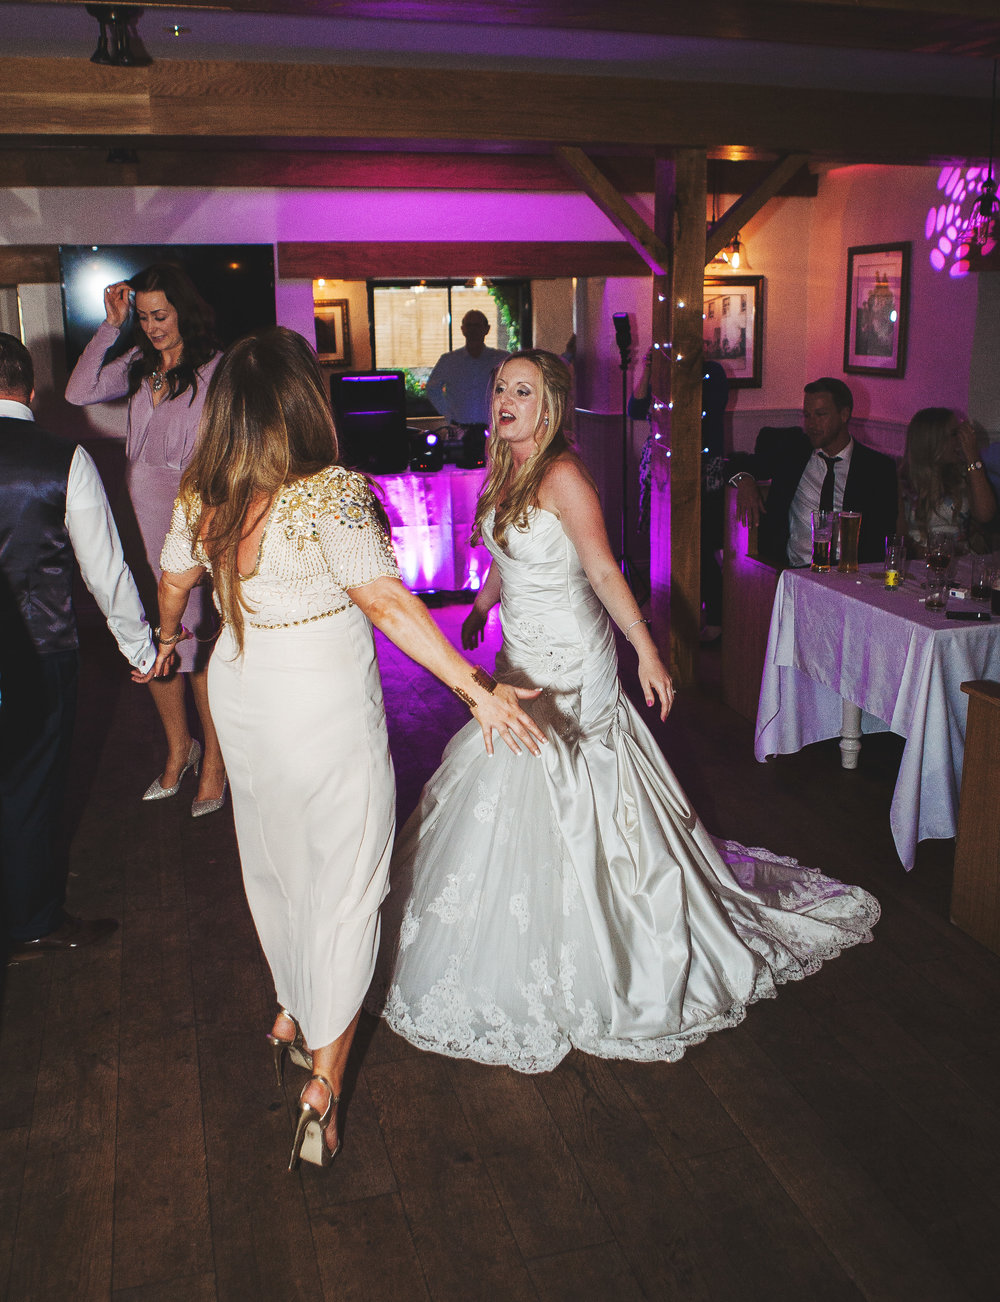 The bride and the dance floor at Inn on the Lake